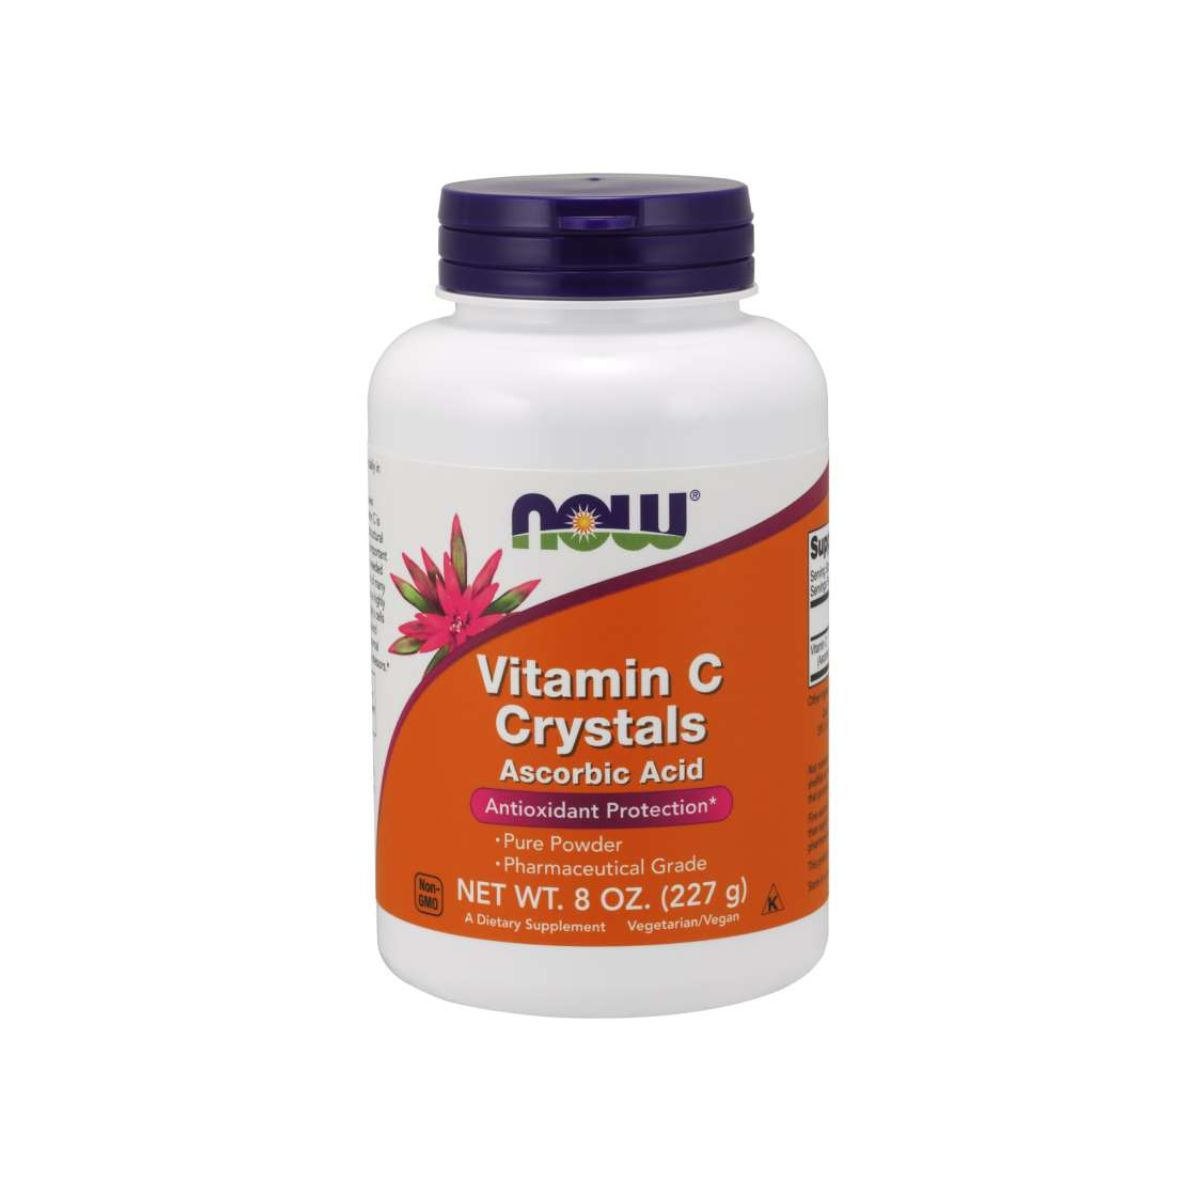 Vitamina C Powder Crystals Ascorbic Acid 227g 45mg - Now Foods